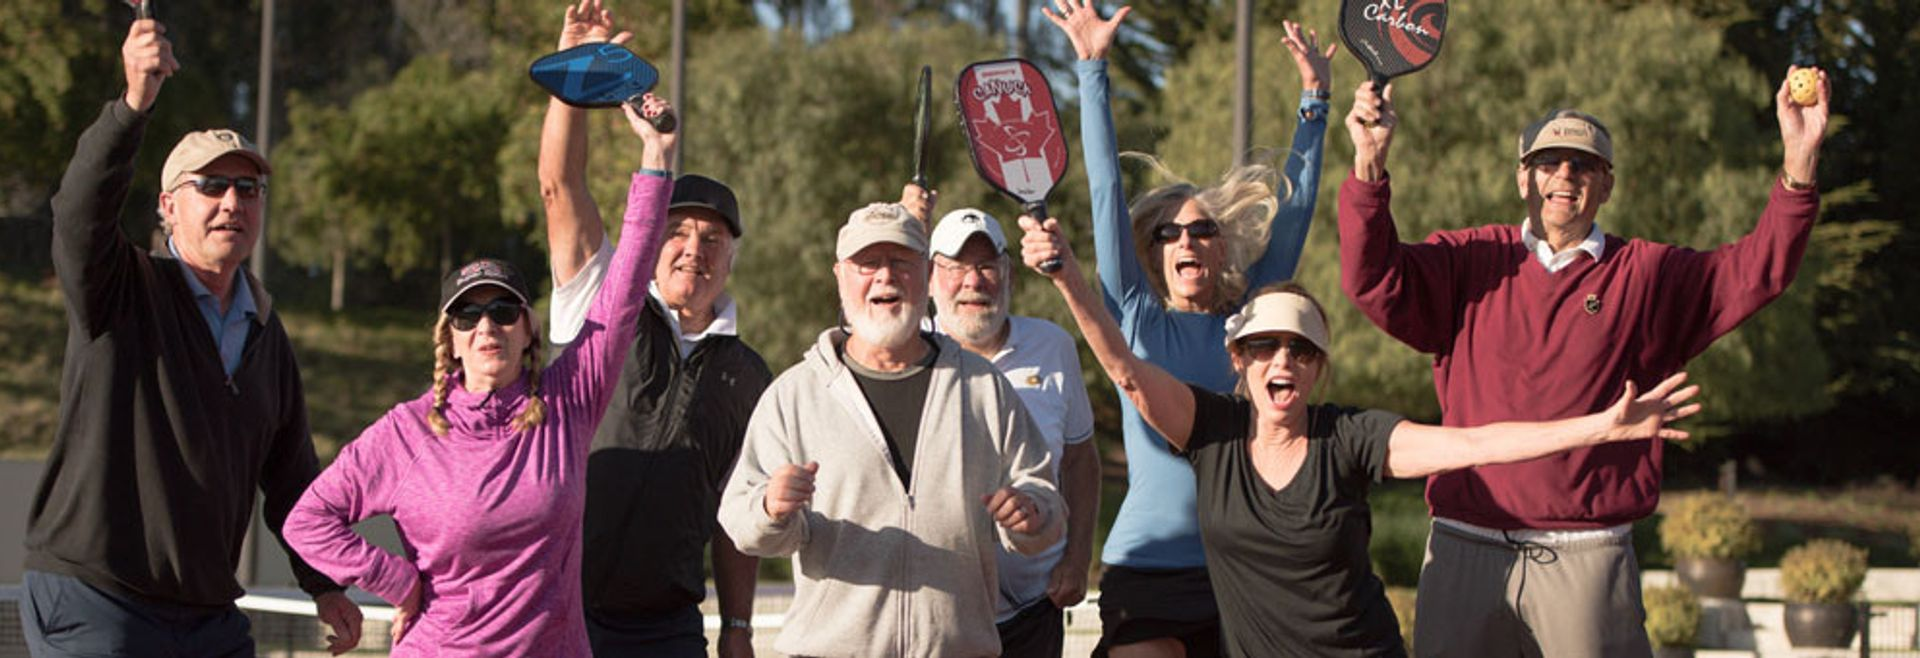 Live Happier Video Trilogy at Monarch Dunes